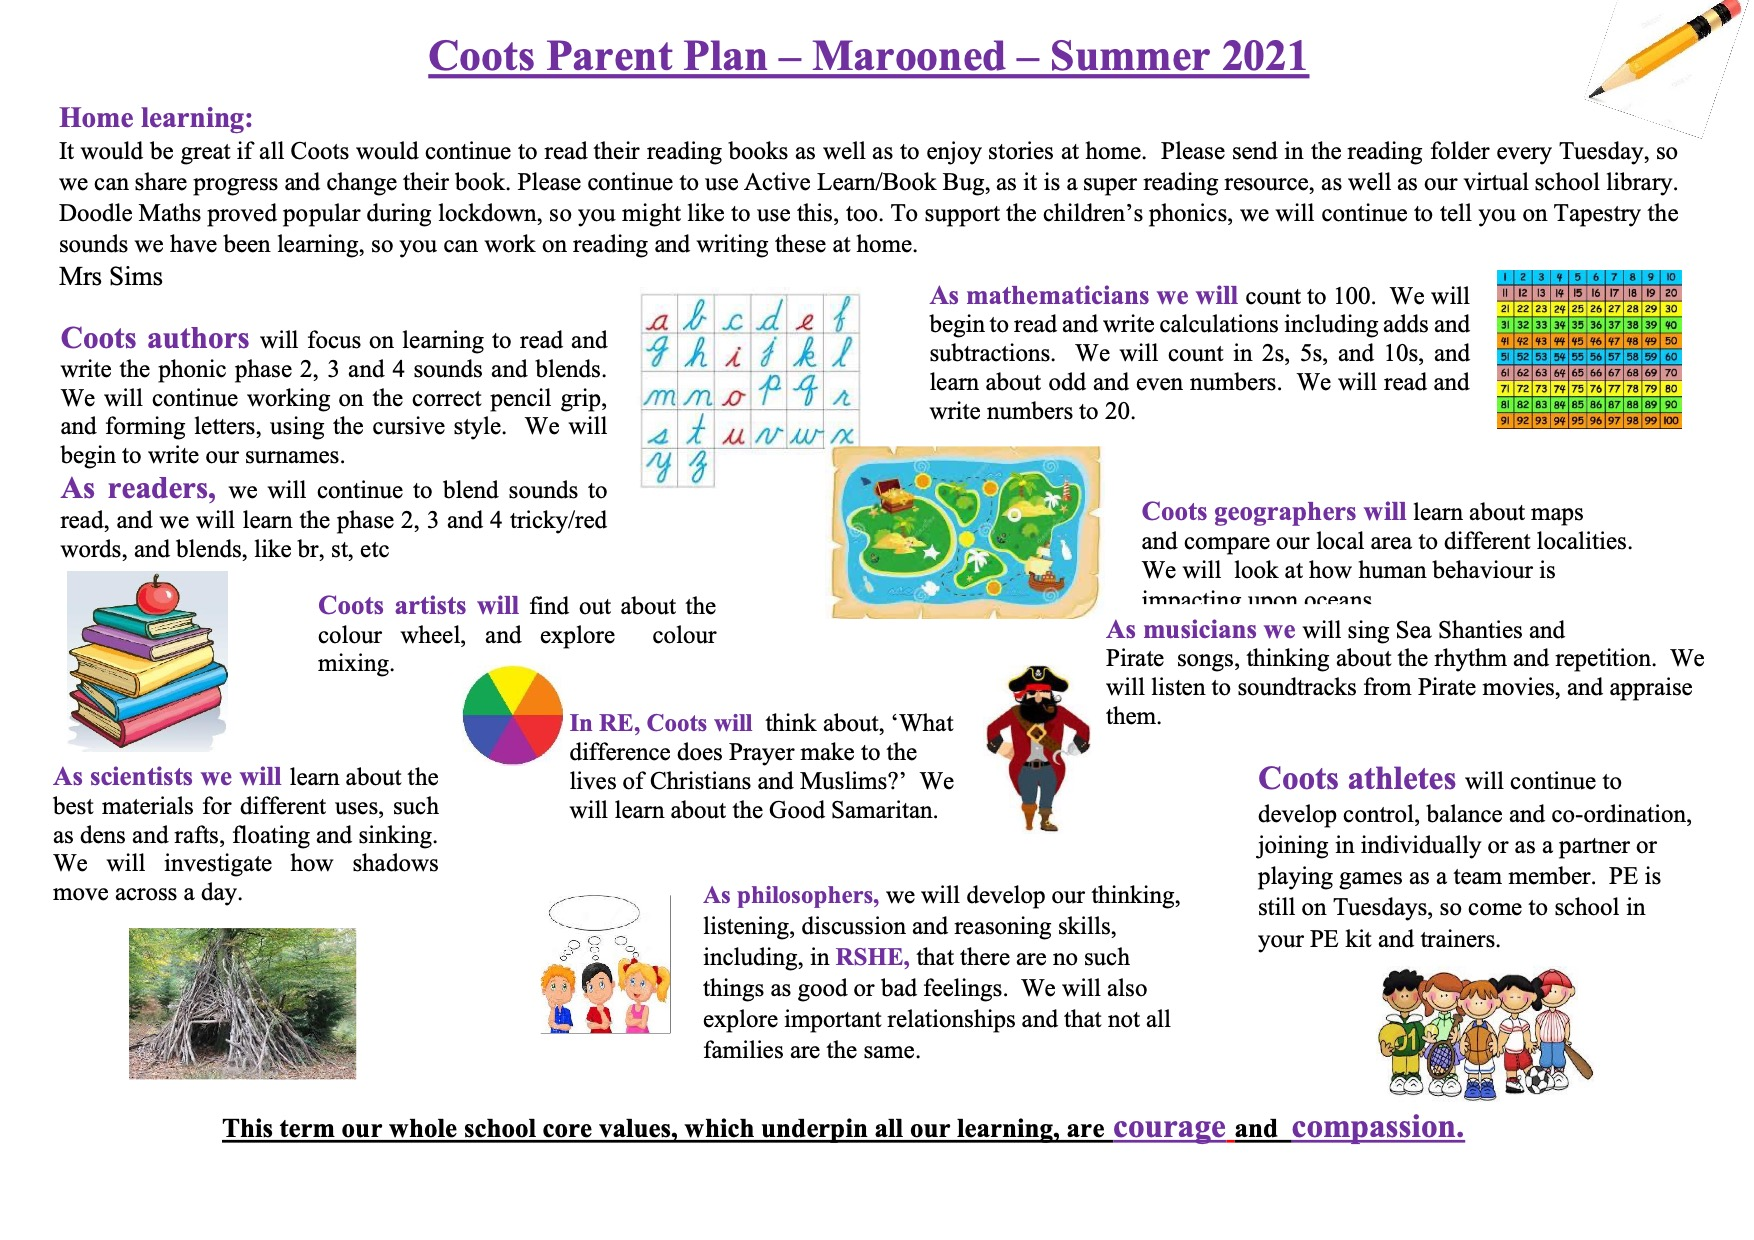 Parent Plan Marooned Summer 2021